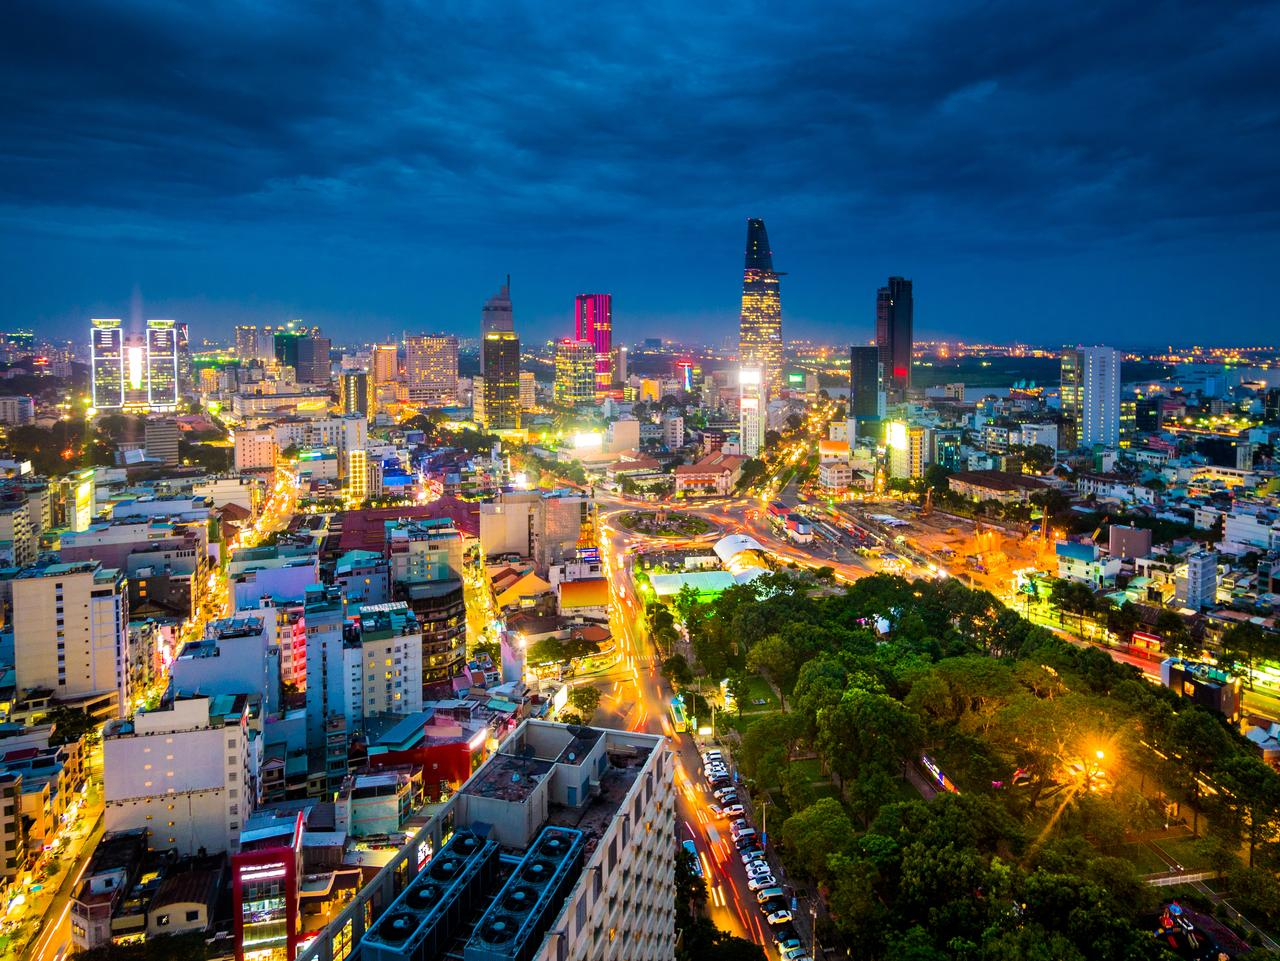 View of the buildings in Ho Chi Minh city or Saigon in Vietnam at night